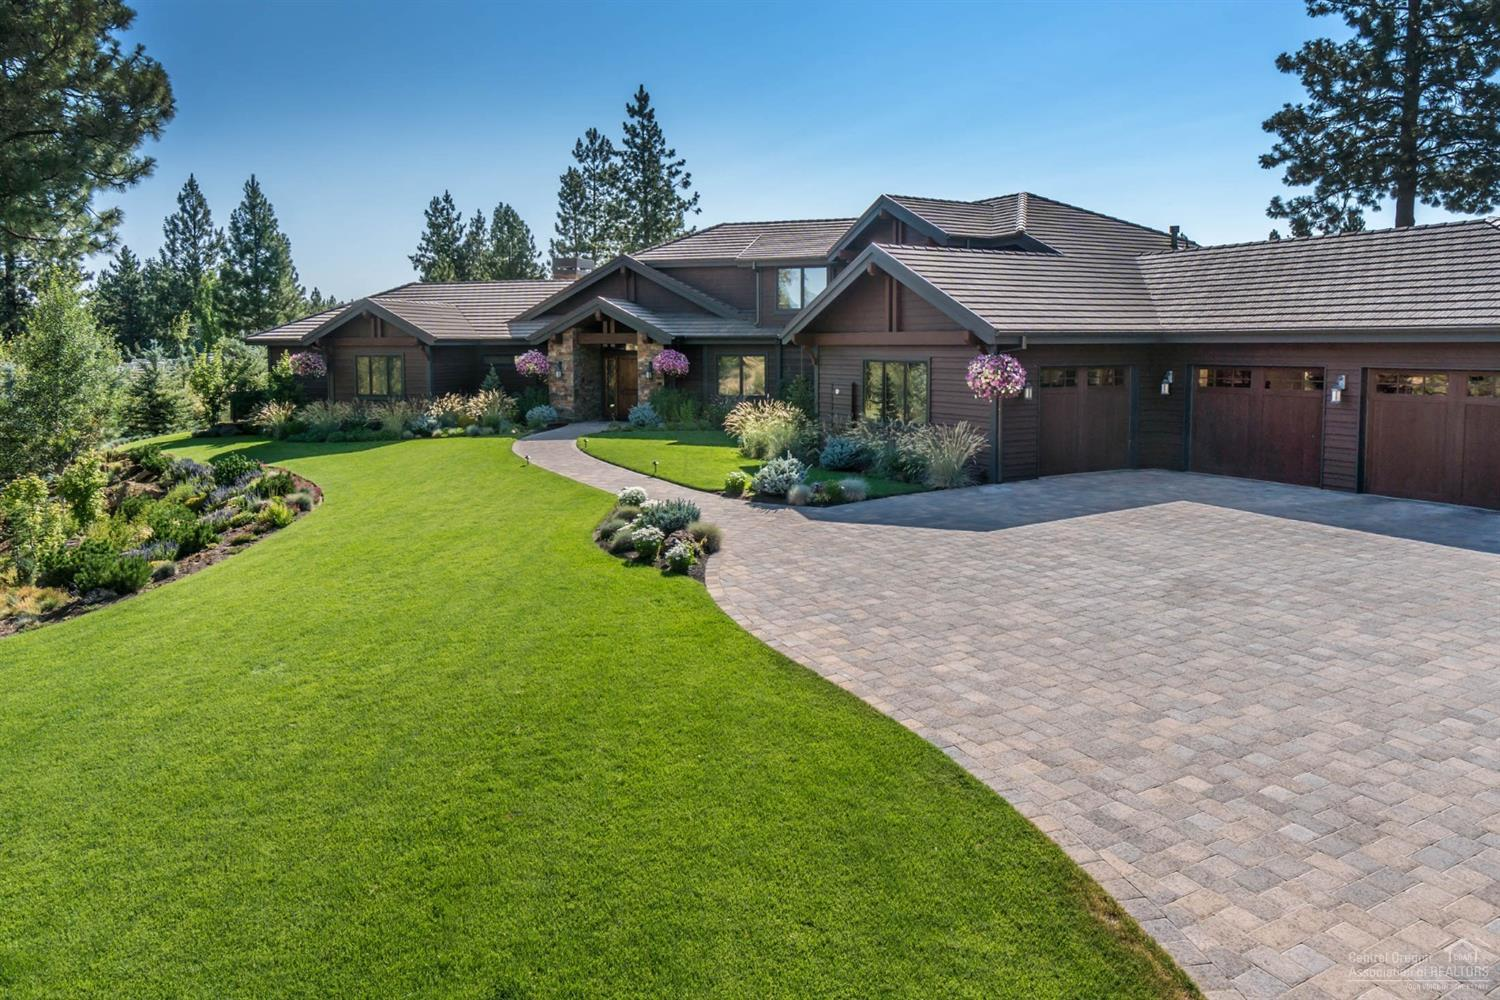 Extensive pavers surround the home, over 5000 pave